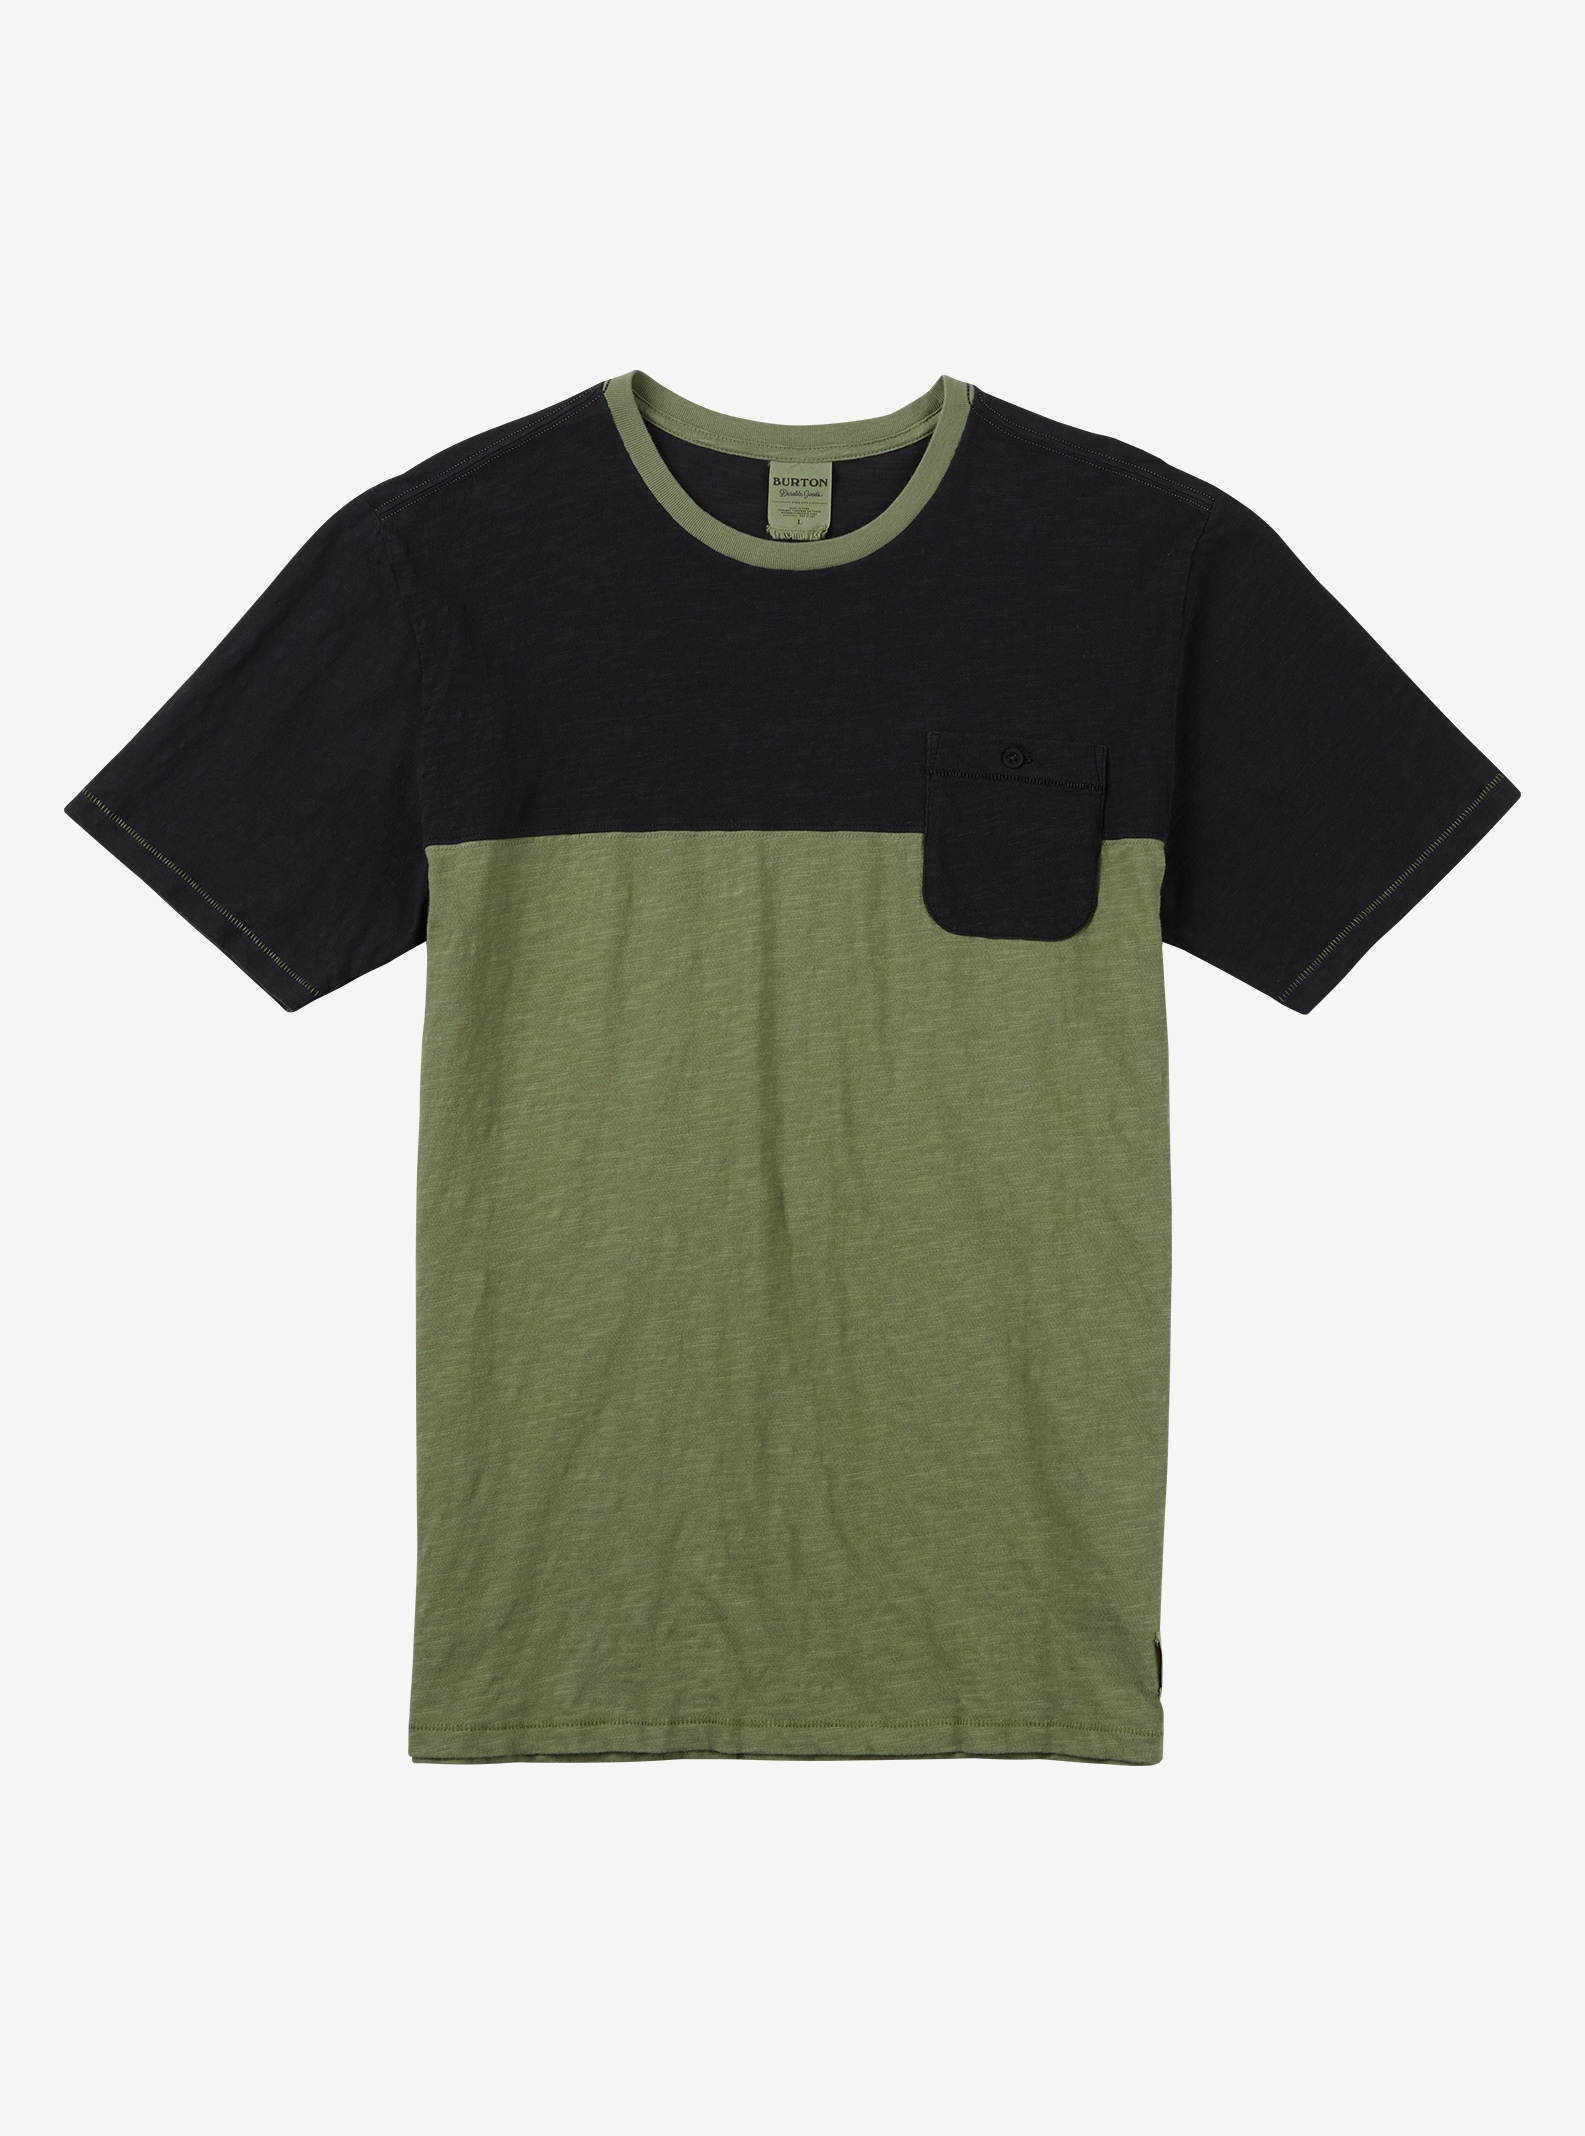 Burton Raymond Short Sleeve T Shirt shown in Oil Green